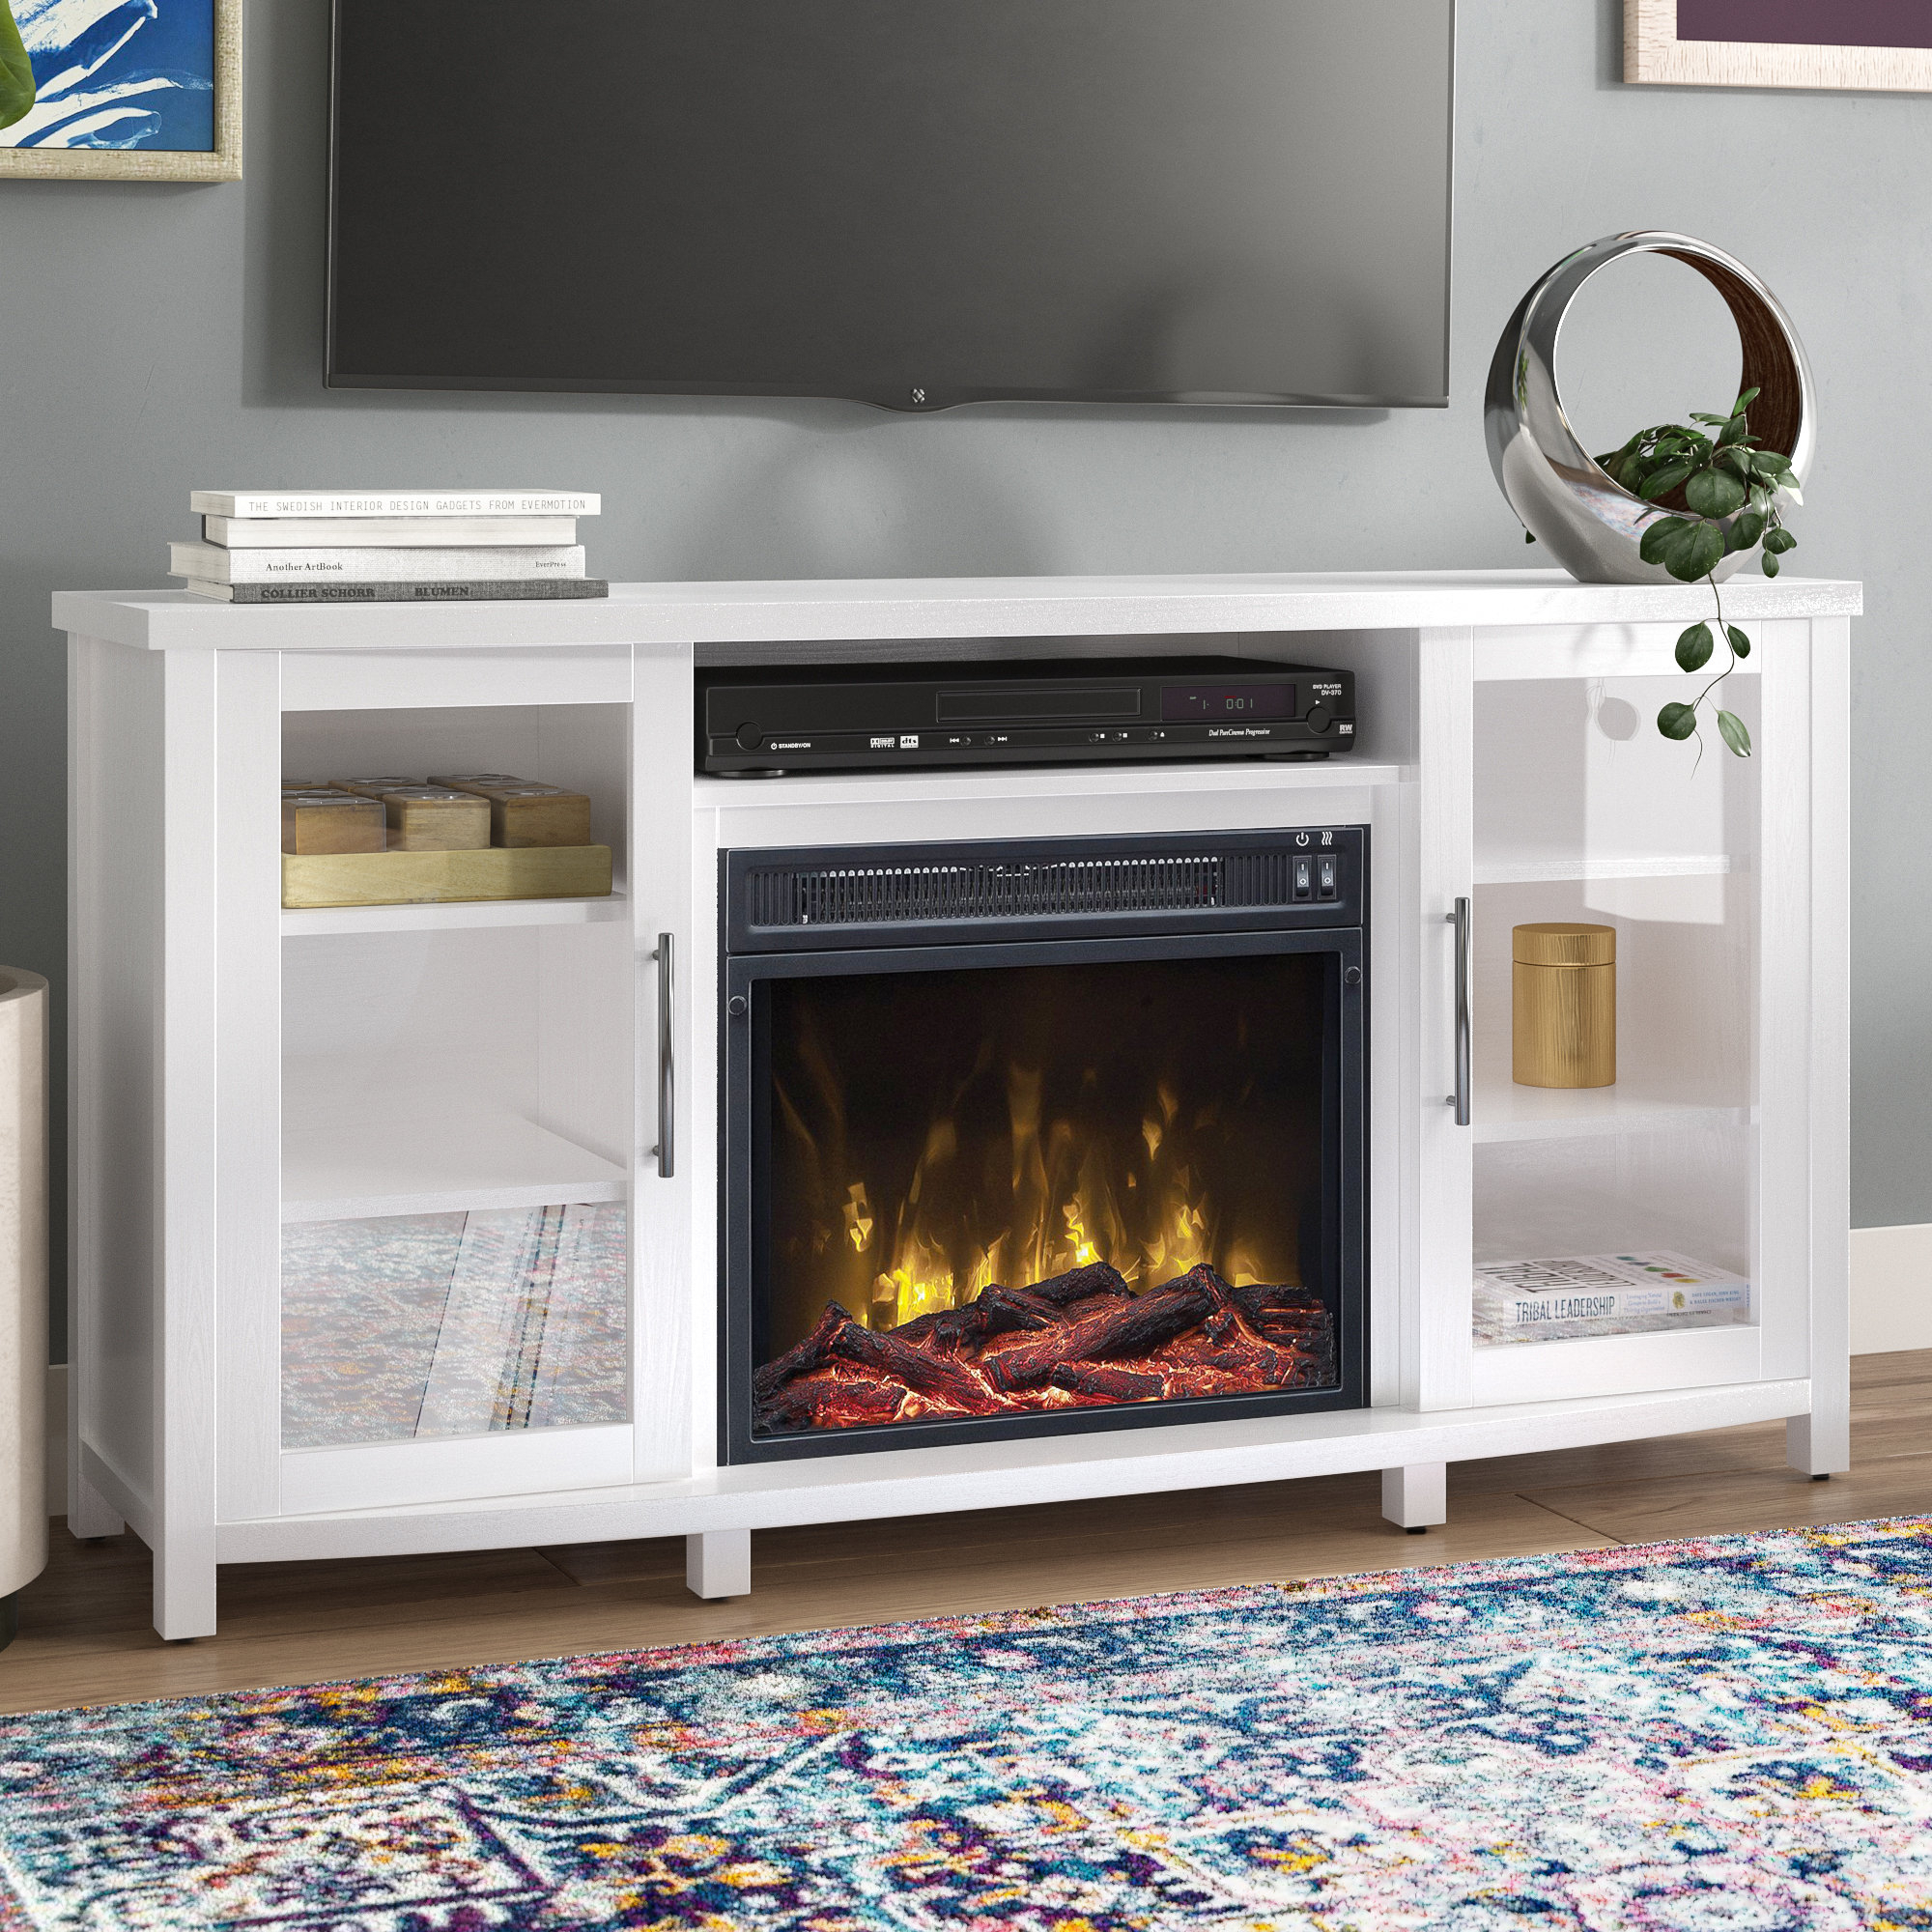 Fireplace Tv Stands & Entertainment Centers You'll Love | Wayfair (View 4 of 30)